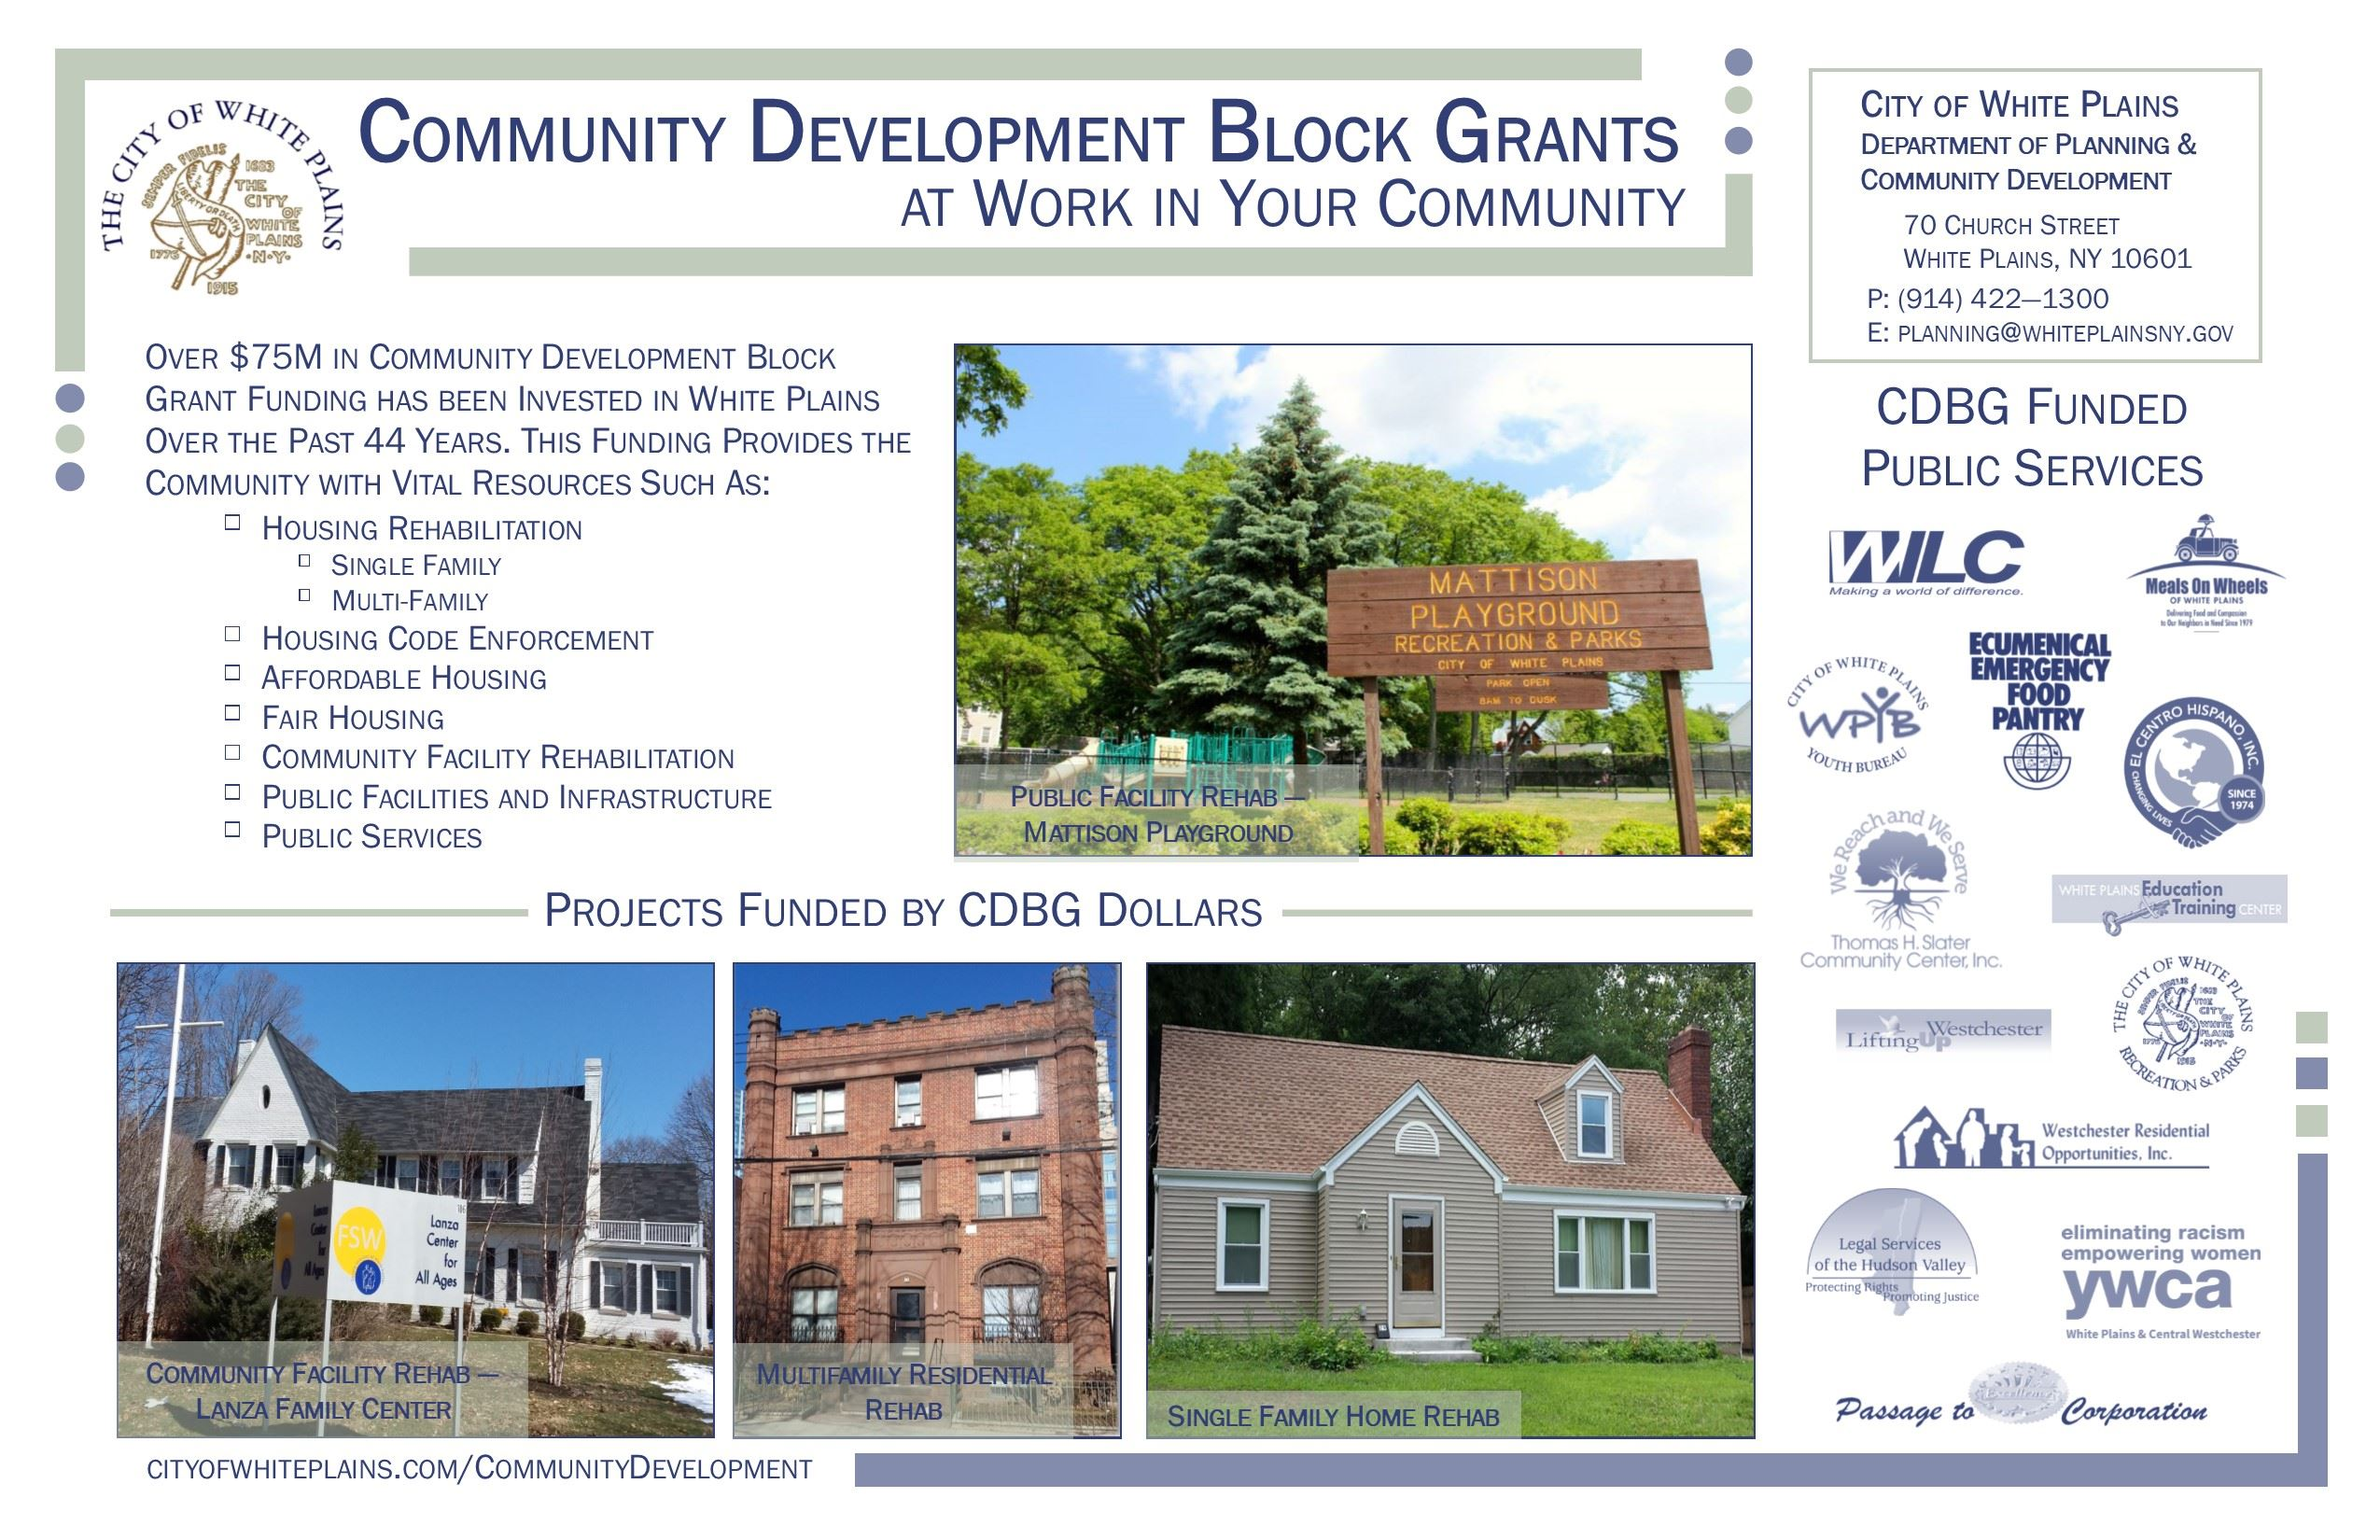 Community Development Block Grant Poster